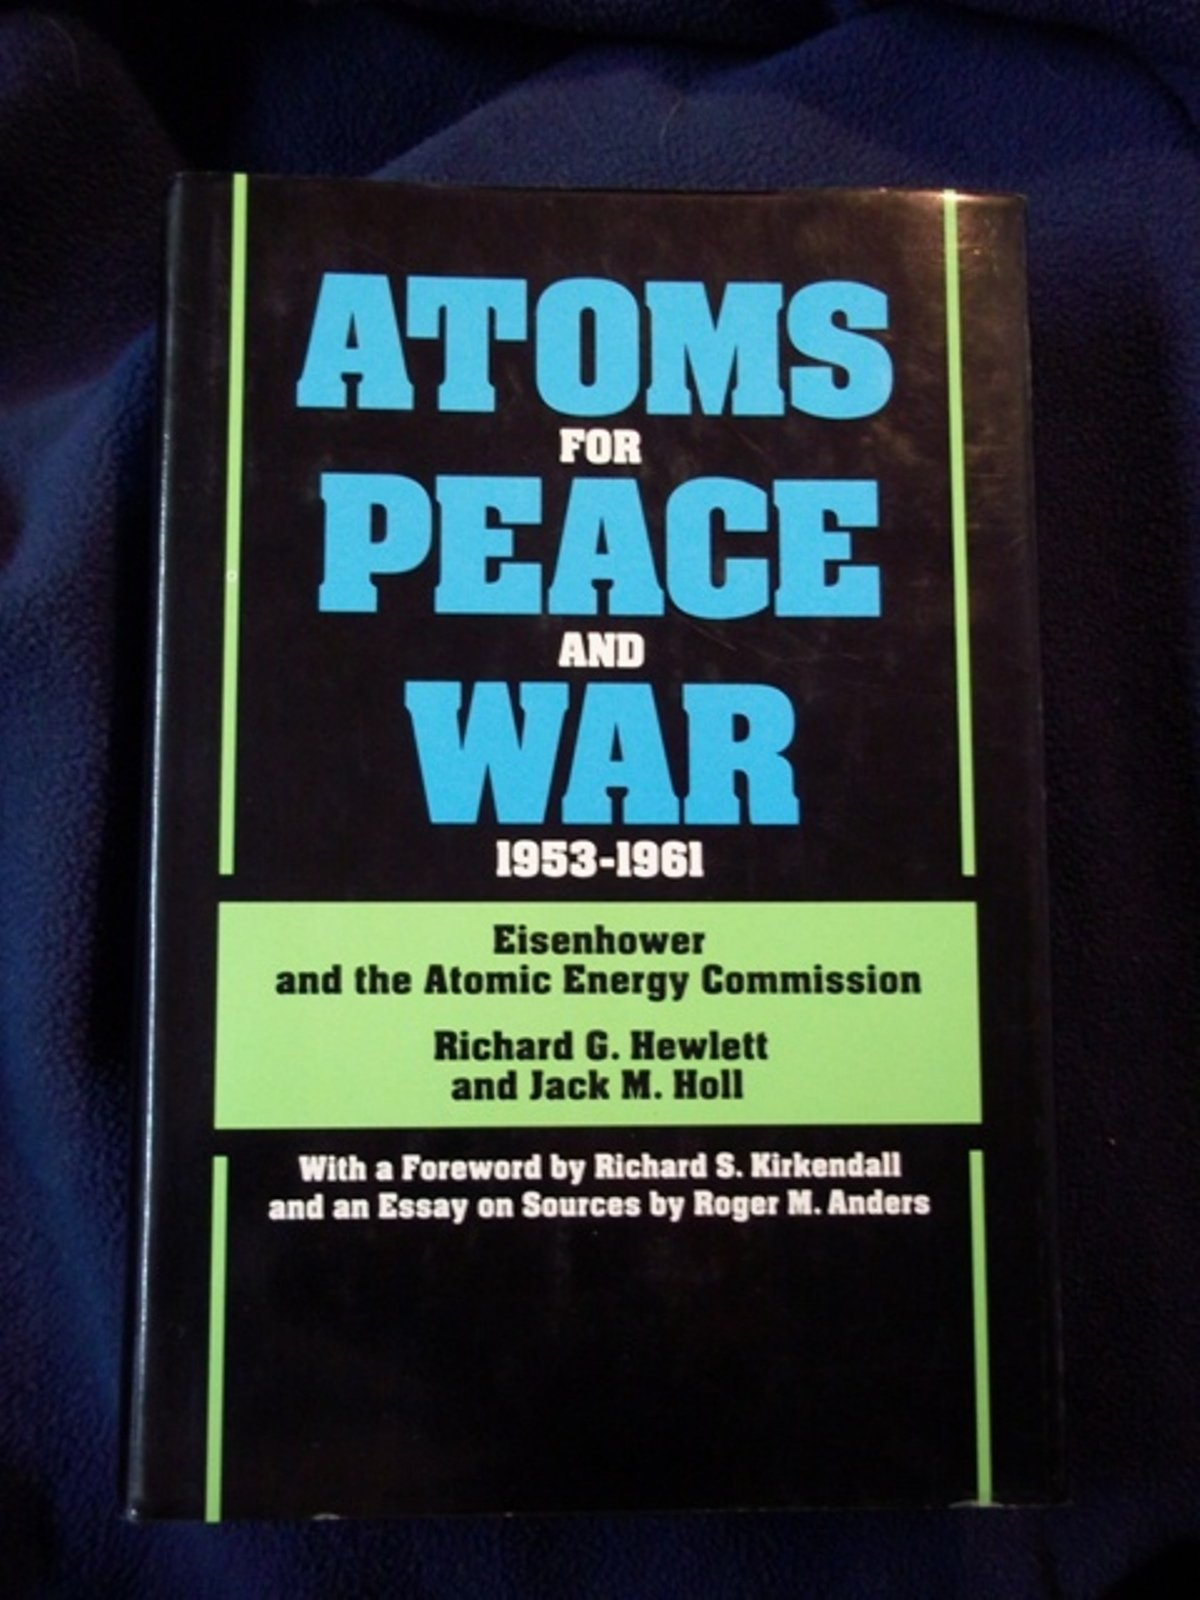 atoms for peace and war eisenhower and the atomic atoms for peace and war 1953 1961 eisenhower and the atomic energy commission a history of the united states atomic energy commission vol iii